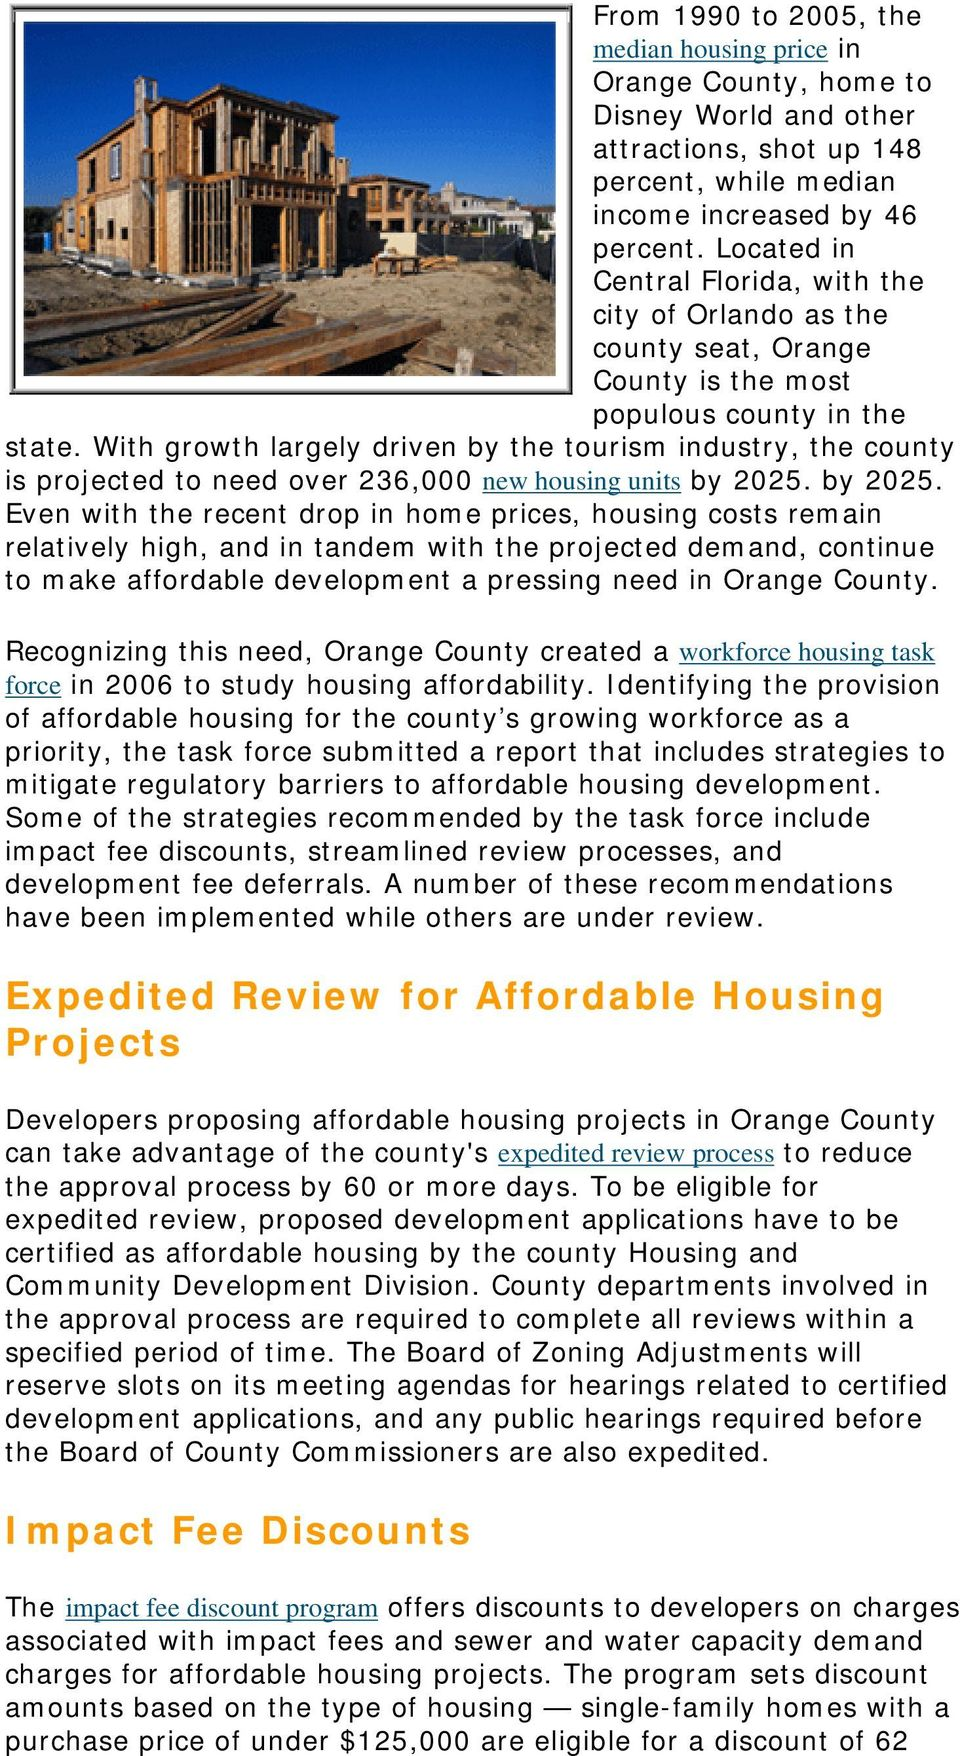 With growth largely driven by the tourism industry, the county is projected to need over 236,000 new housing units by 2025.